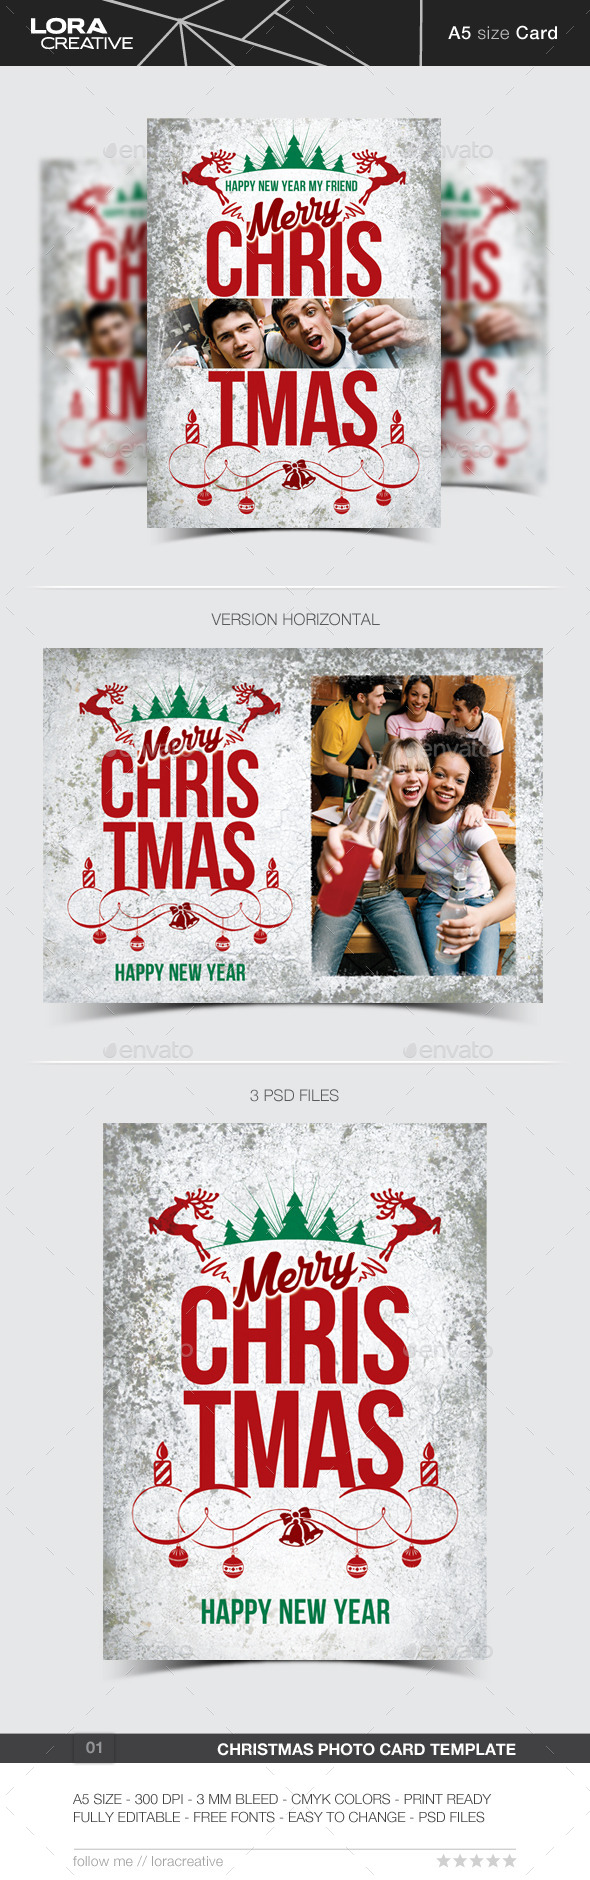 Christmas Greeting Photo Card - Holiday Greeting Cards